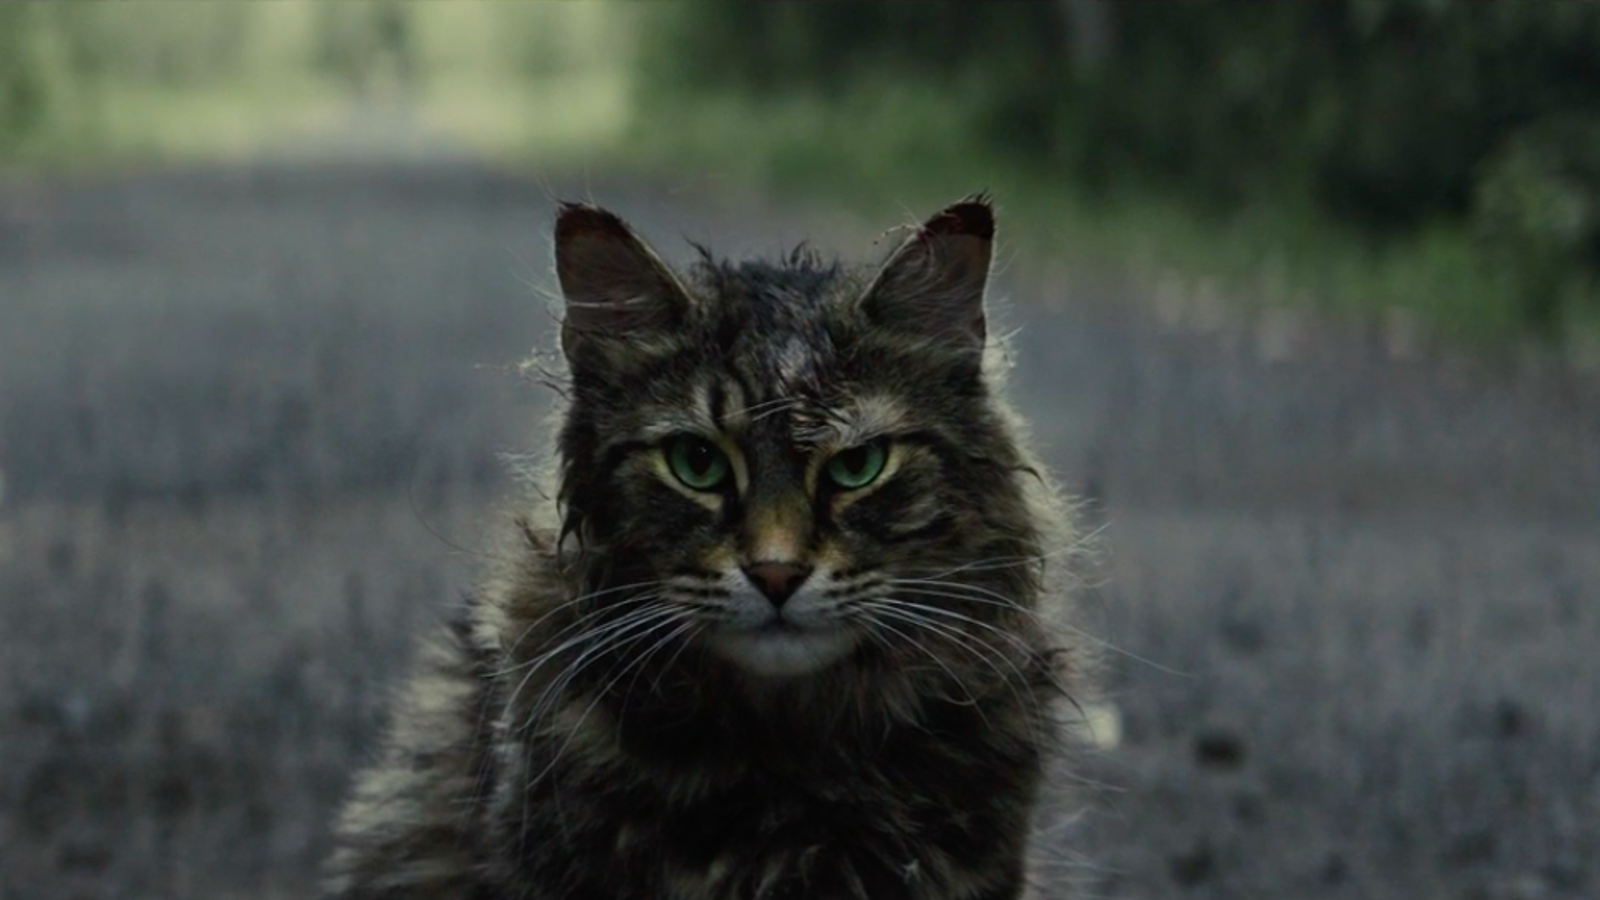 Pet Sematary's first trailer leans into the folk horror of Stephen King's scariest book